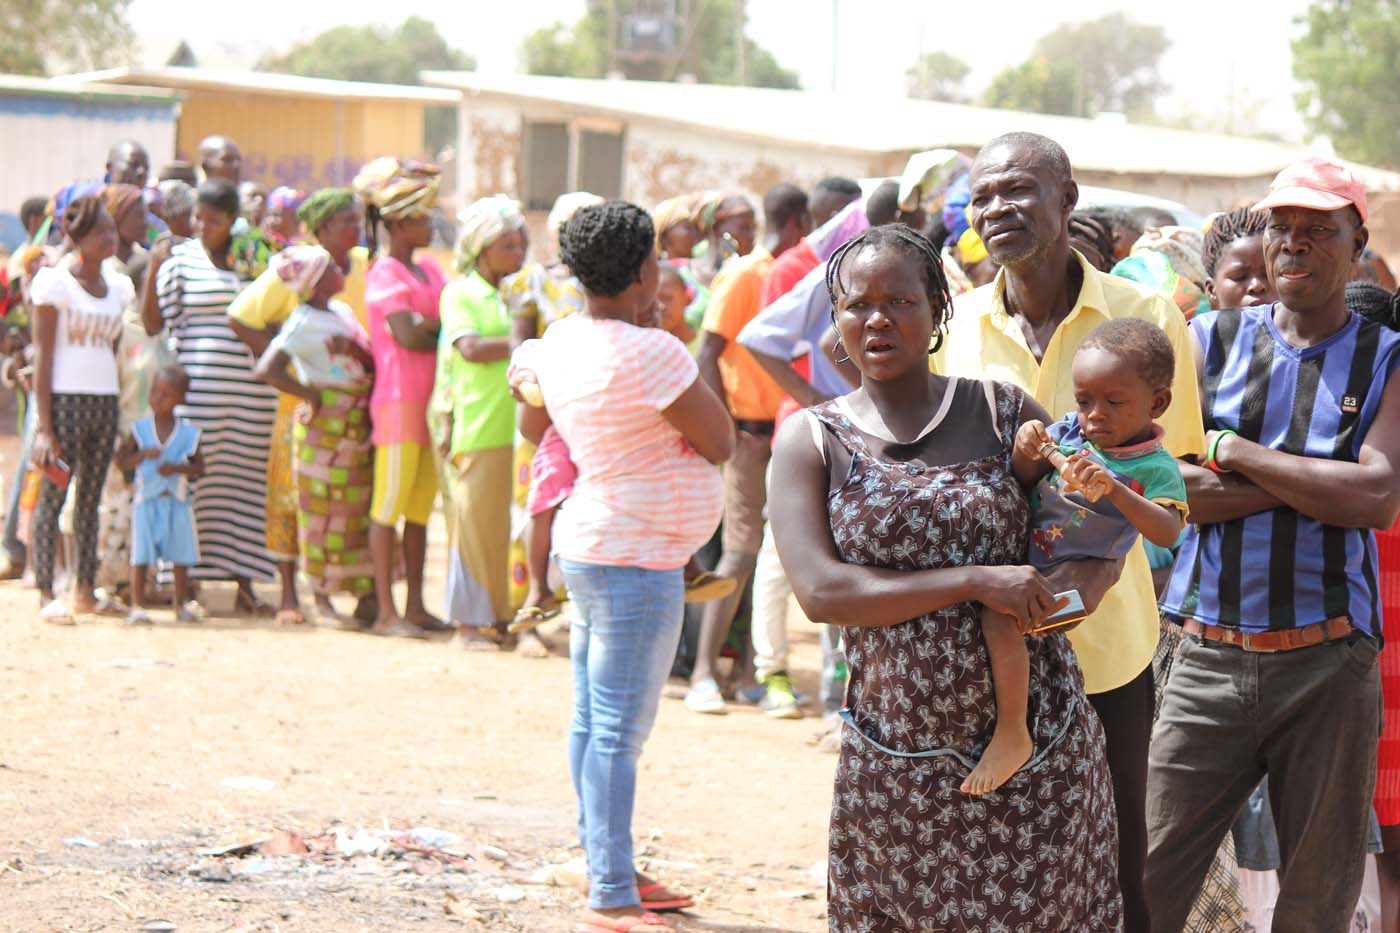 Villagers lined up to get registered